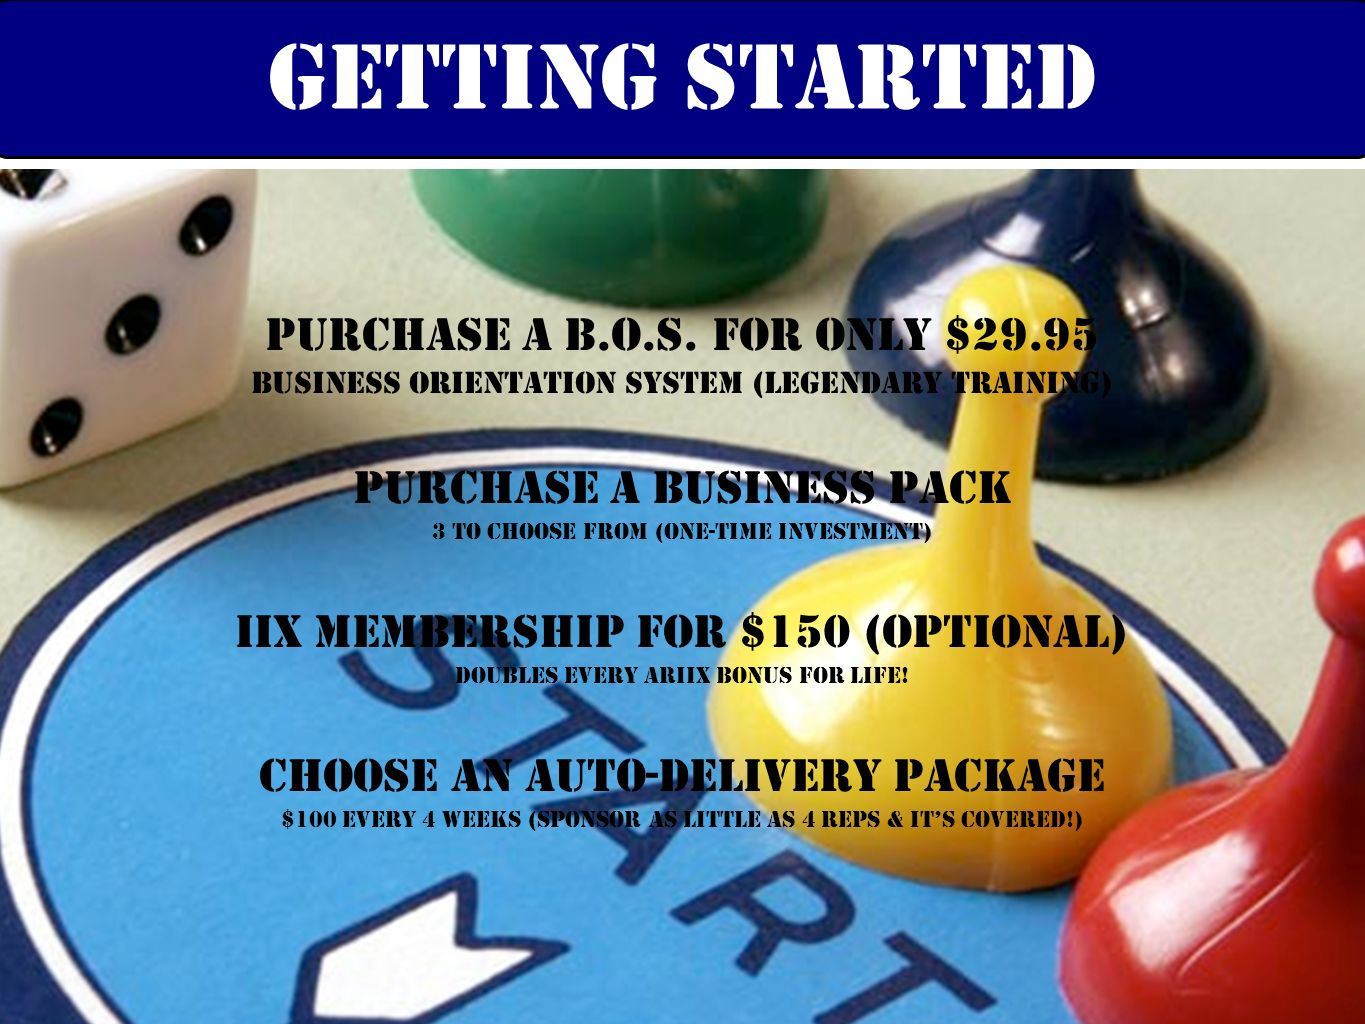 Purchase a B.O.S. for only $29.95 Business Orientation System (Legendary Training) Purchase a Business Pack 3 to Choose From (One-Time Investment) IIX